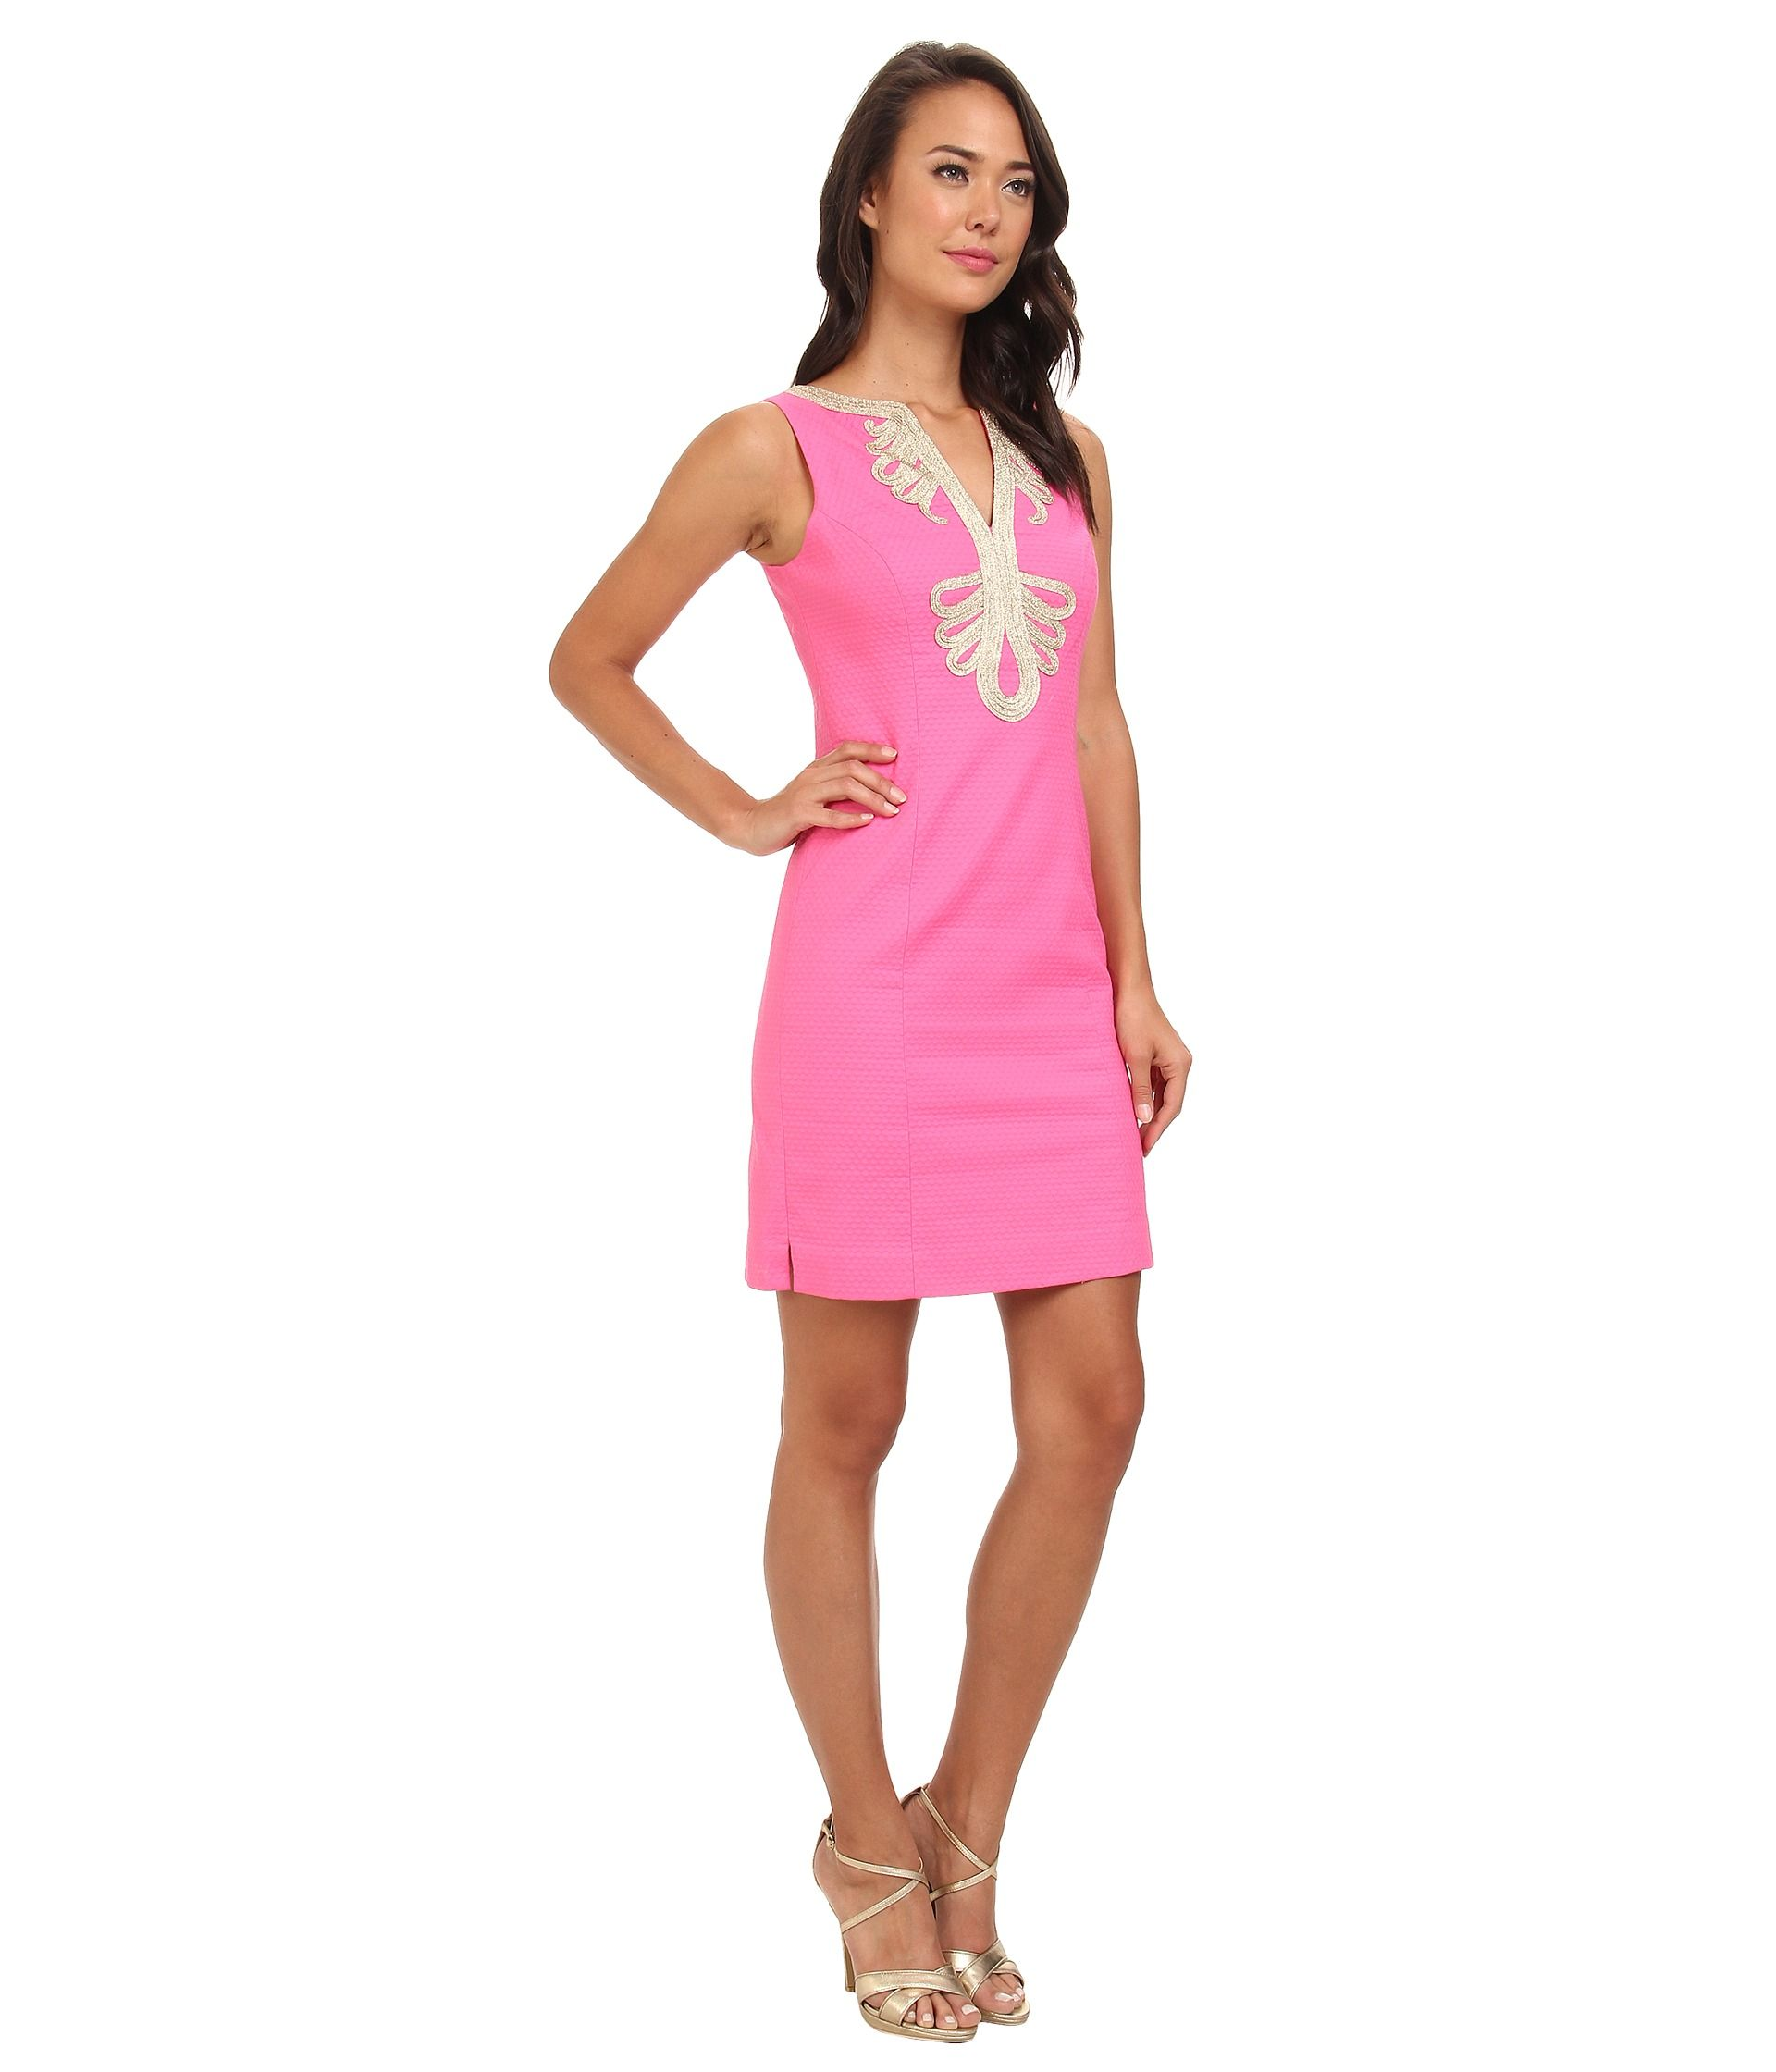 7d14c7aa45b9 Solid Pink Janice - Size 0 Holiday Parties